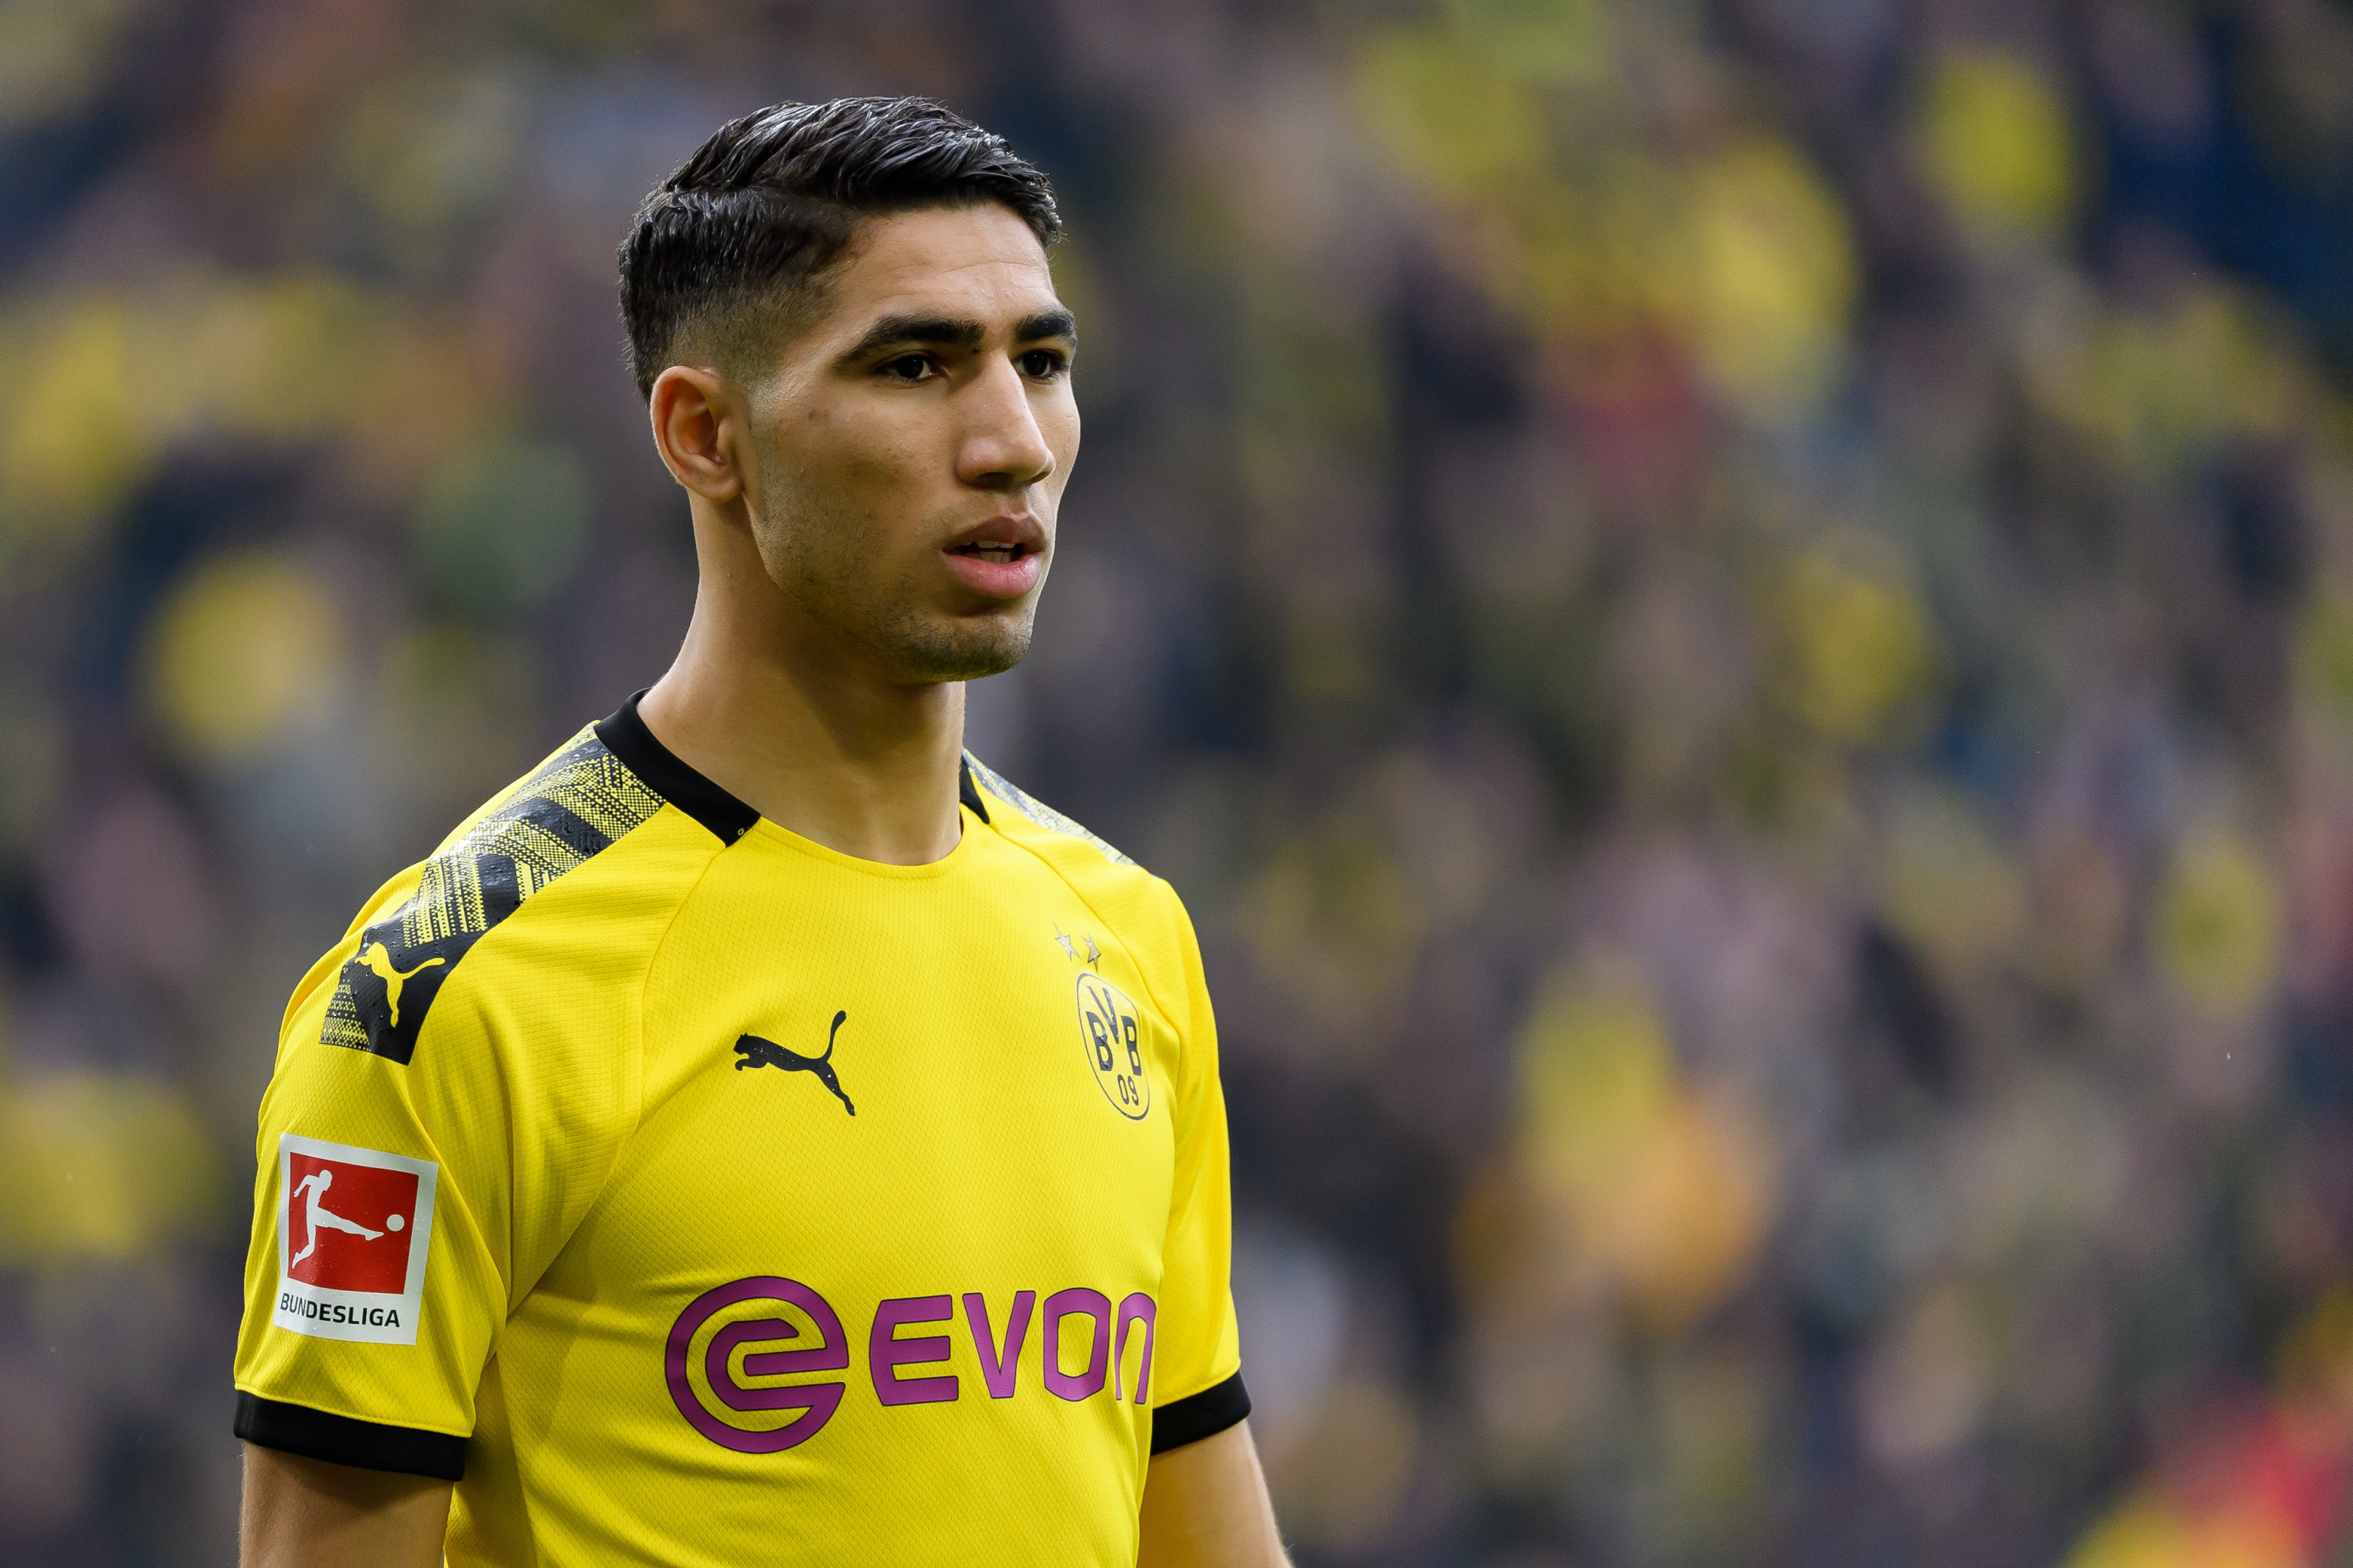 Why do Chelsea want Achraf Hakimi if they have Reece James?